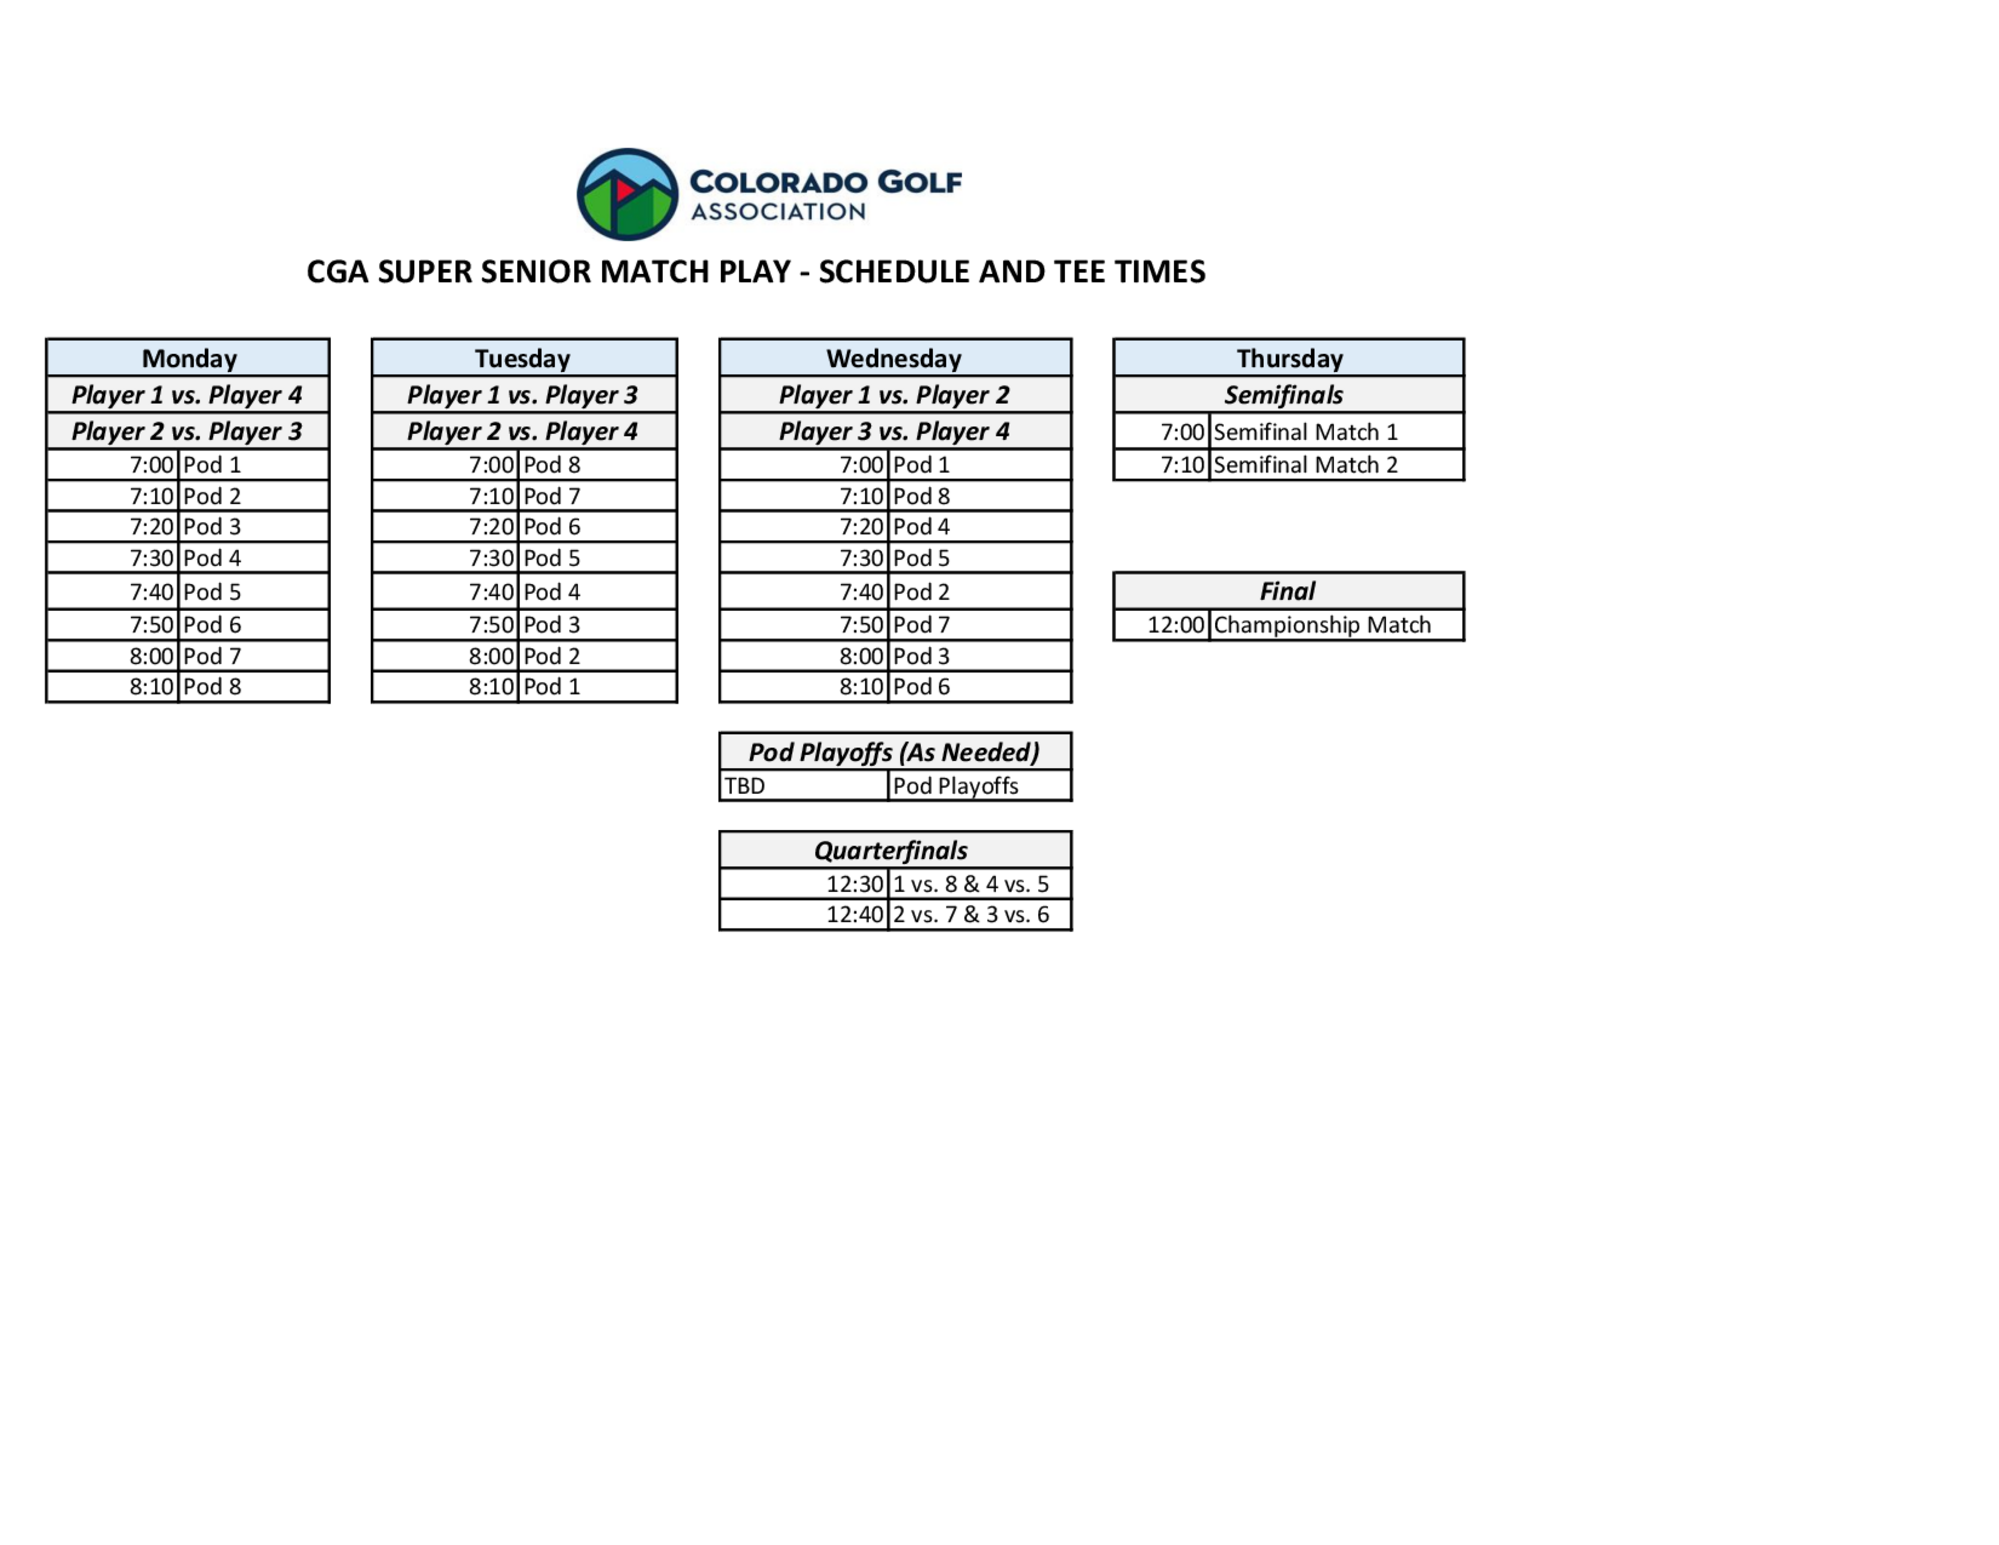 Super sr schedule and tee times 1